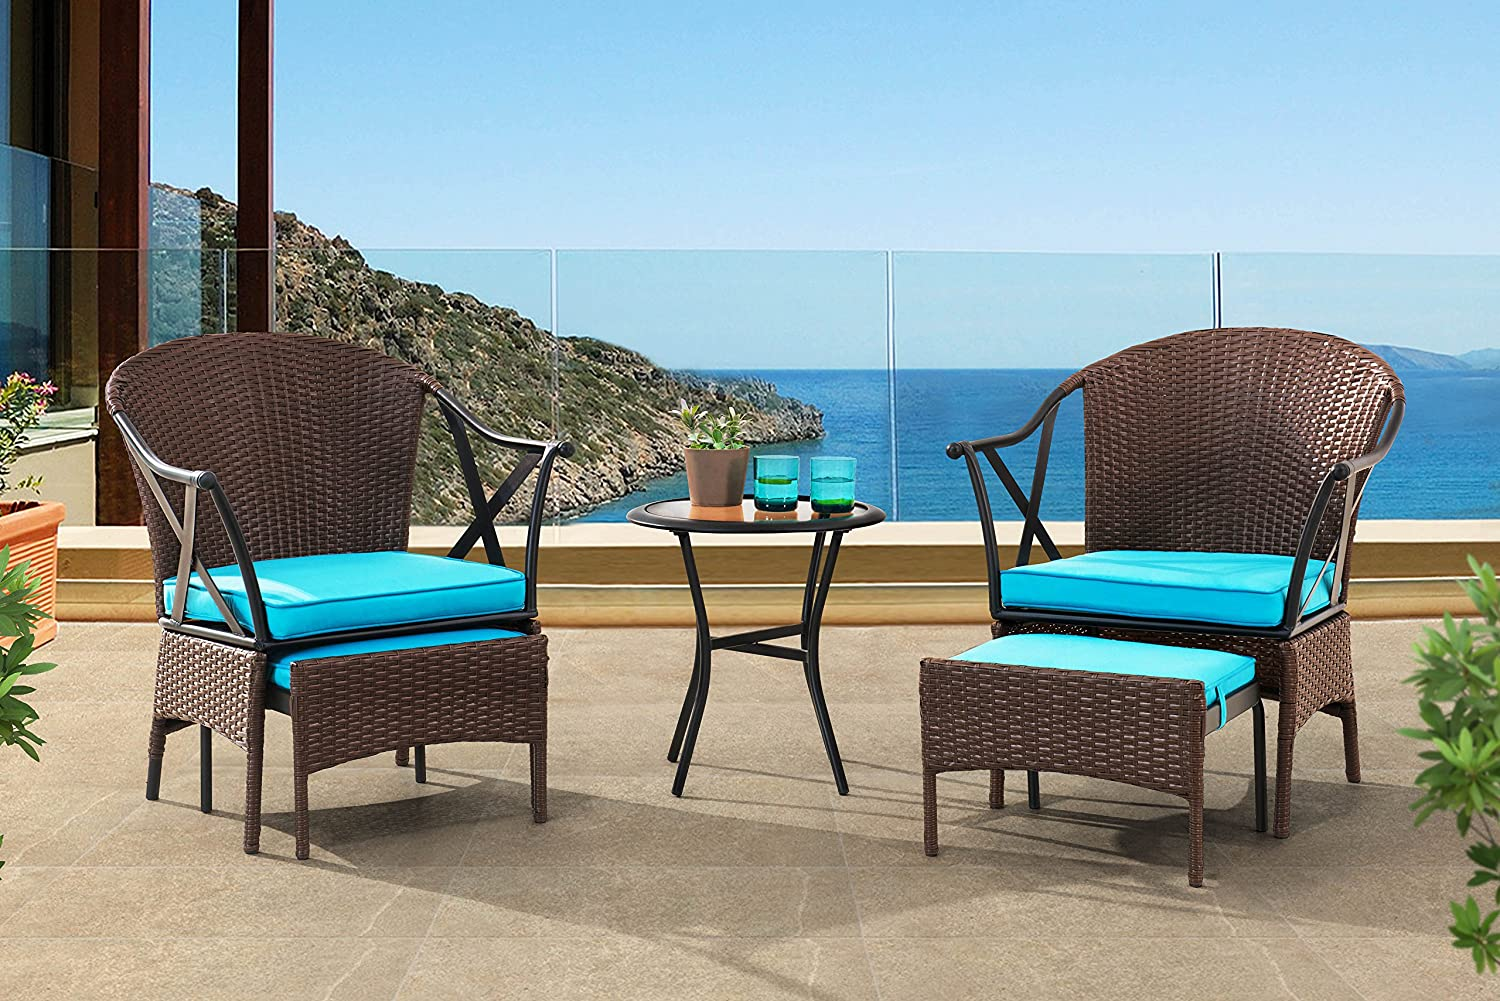 Sunjoy S-DN2096SST 5 Piece Wicker Seating Set